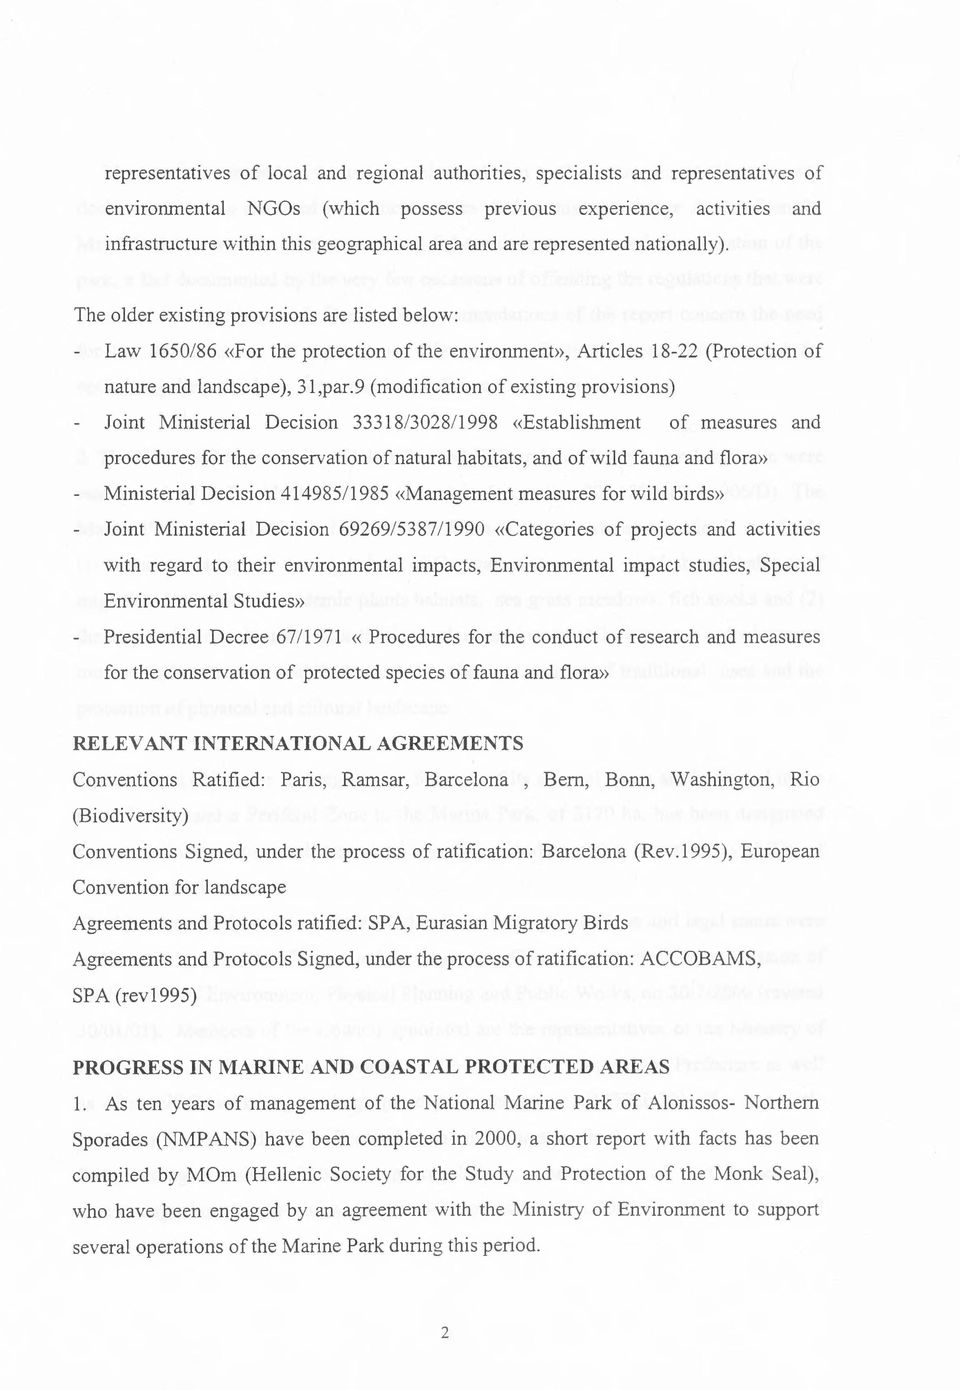 The older existing provisions are listed below: - Law 1650/86 «For the protection of the environment», Articles 18-22 (Protection of nature and landscape), 31,par.